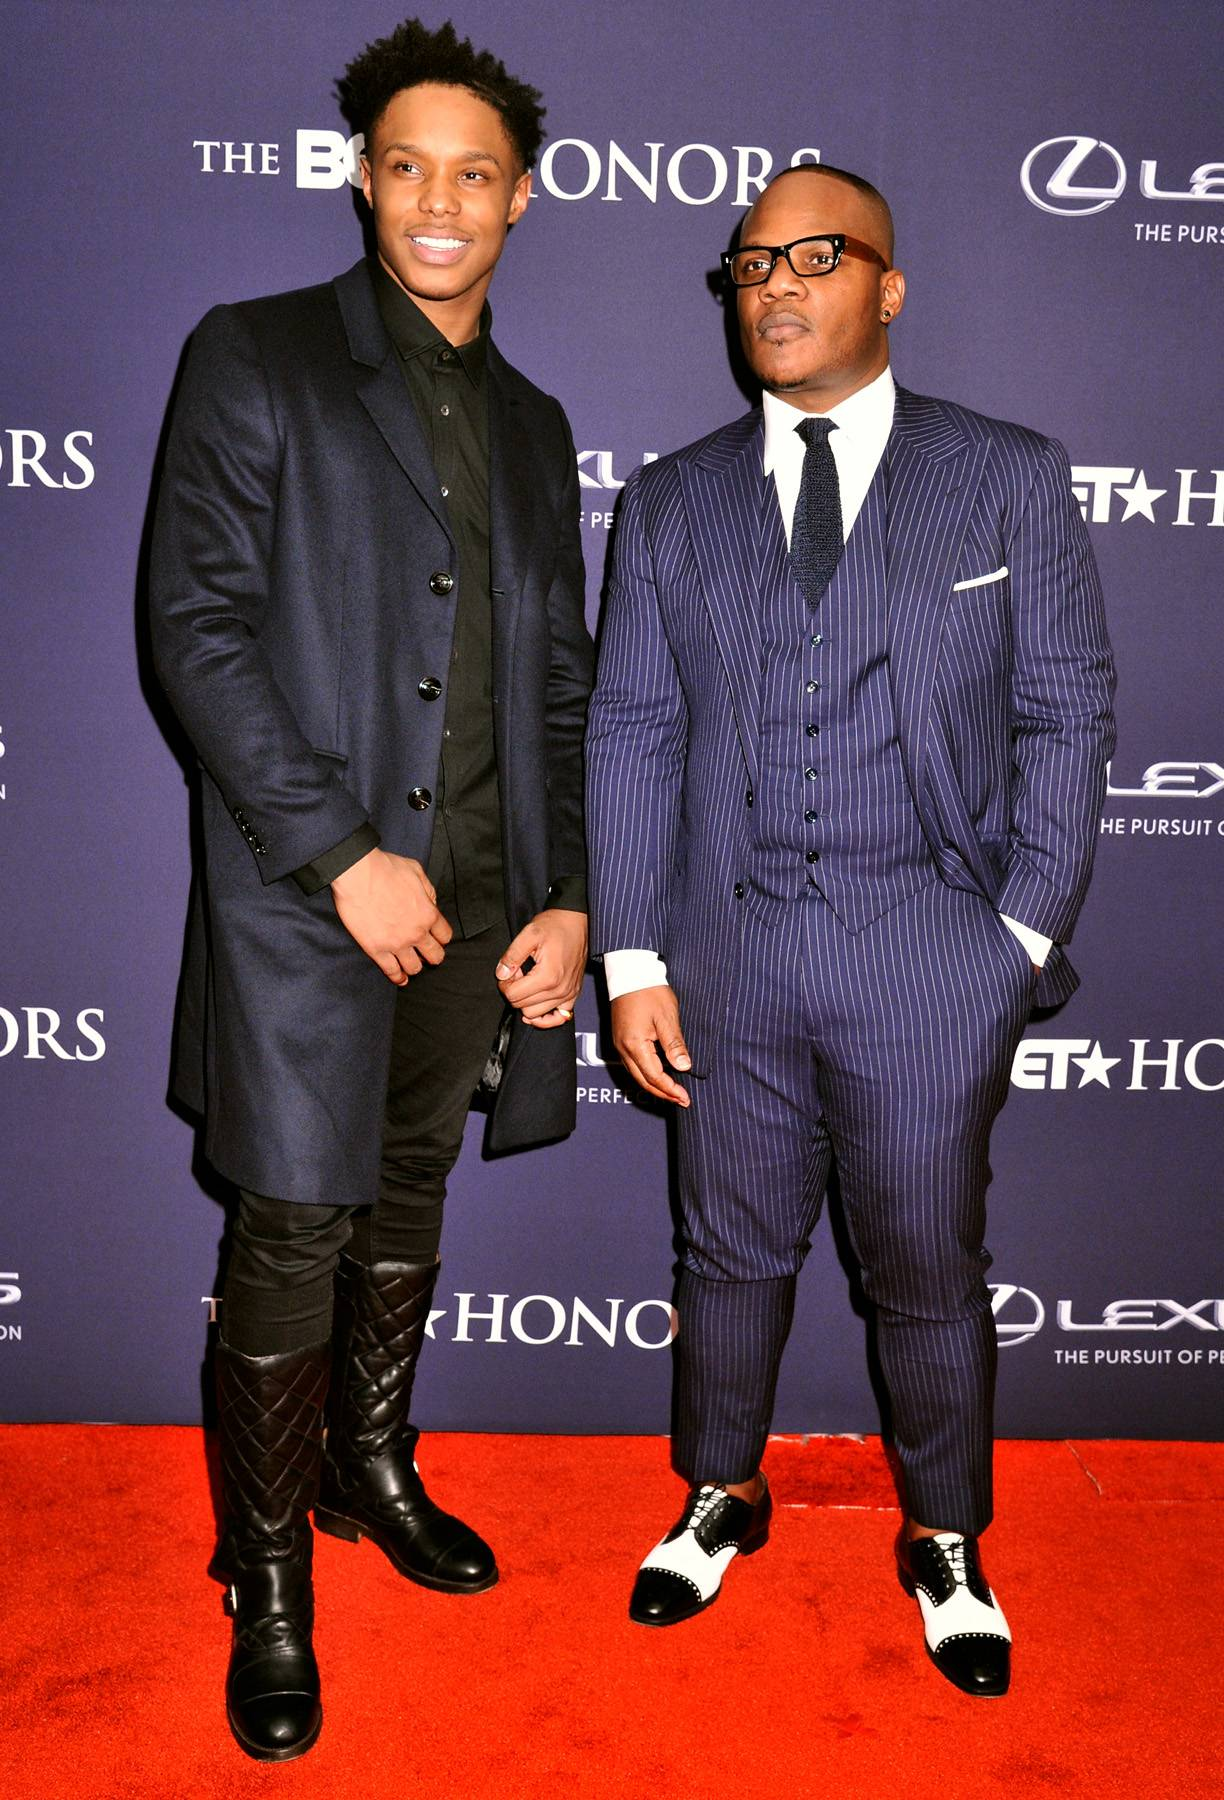 Boys in Blue  - Singers Avery Wilson and Sean Garrett get dapper in their blue ensembles as they do their best GQ poses. (Photo: Kris Connor/BET/Getty Images for BET)